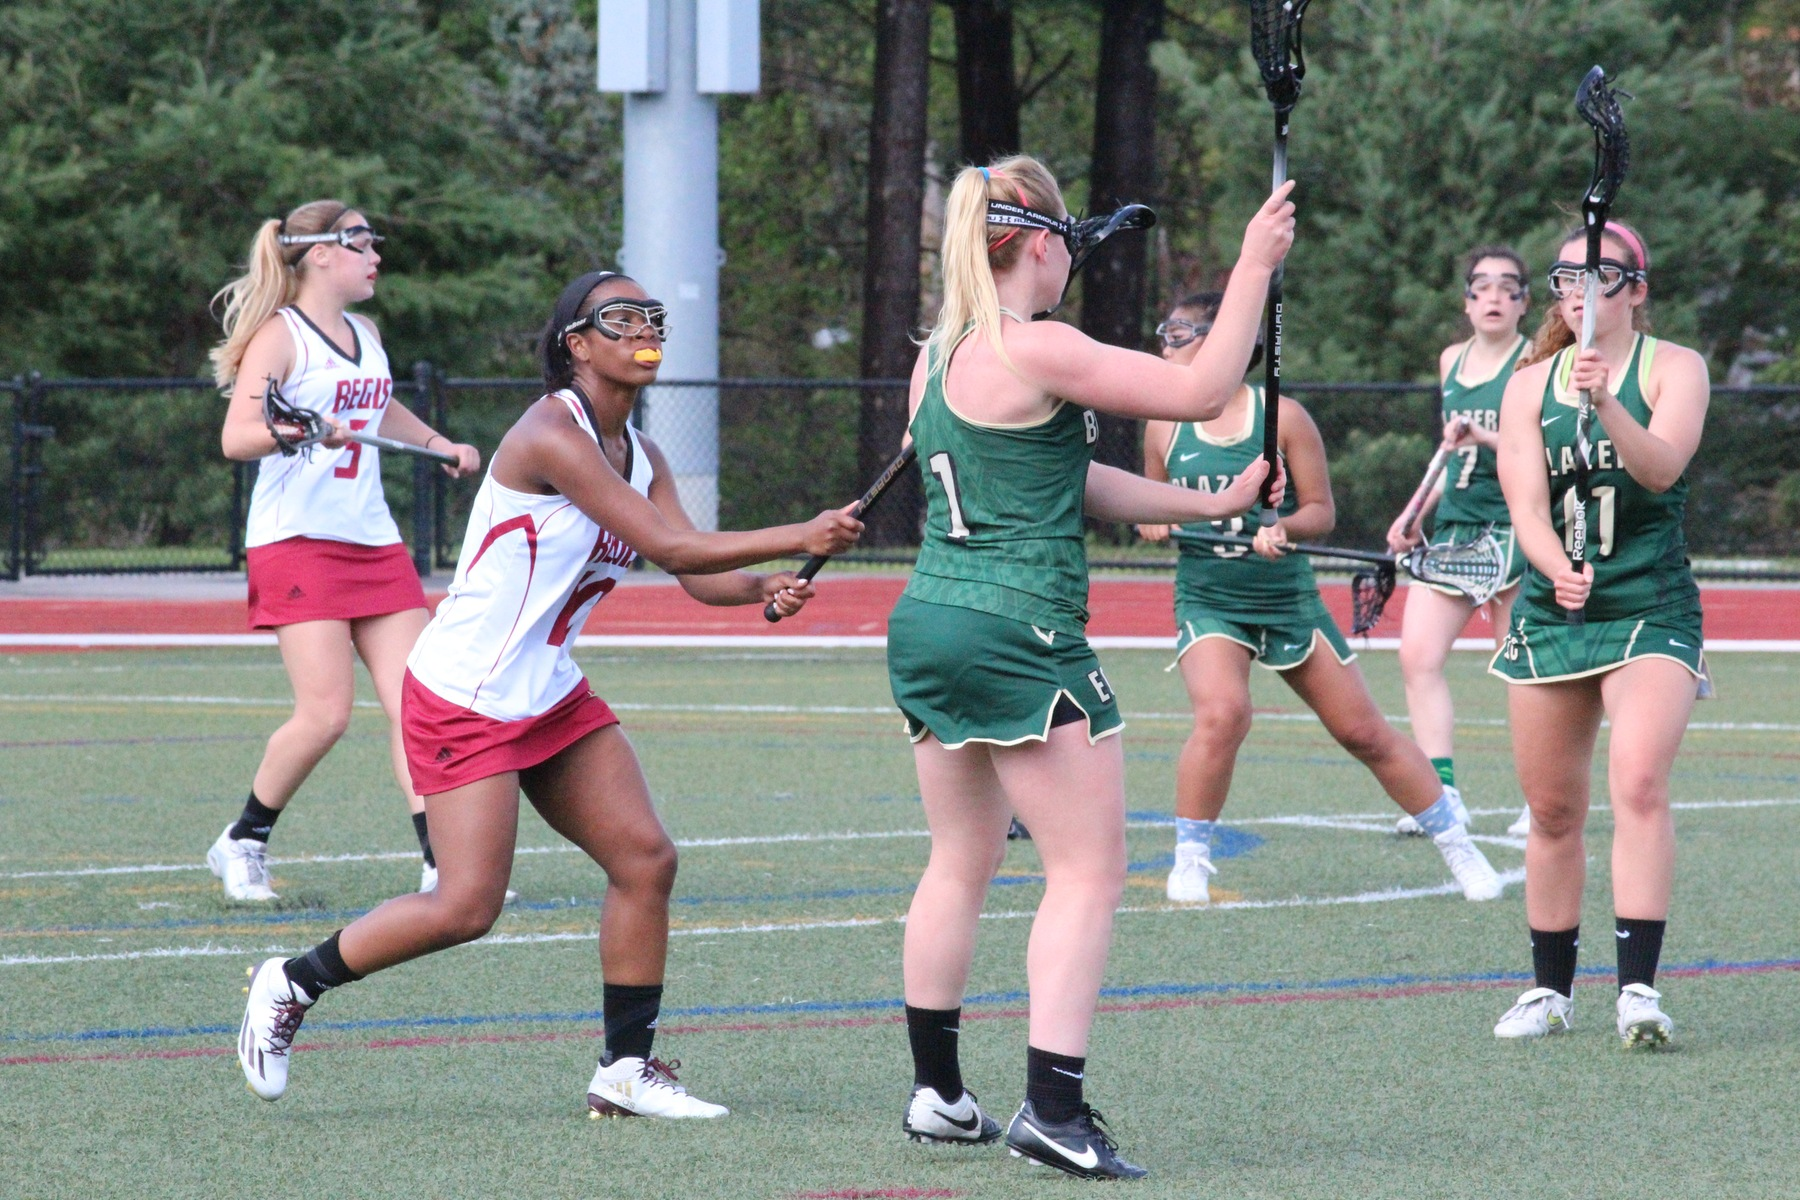 Women's Lacrosse Falls To Regis In NECC Title Game